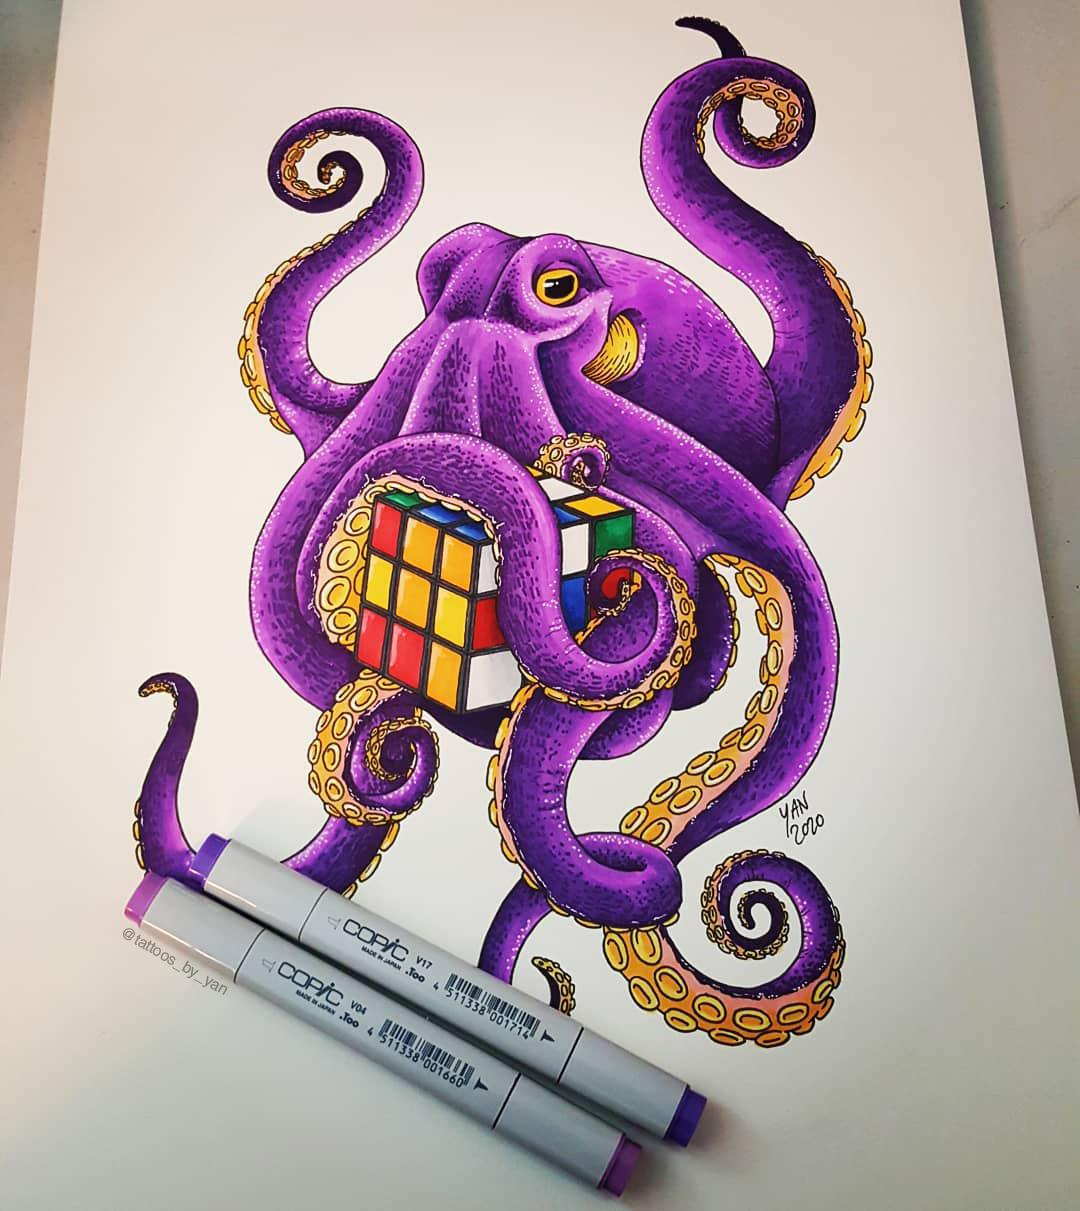 Octopus with a Rubik's cube